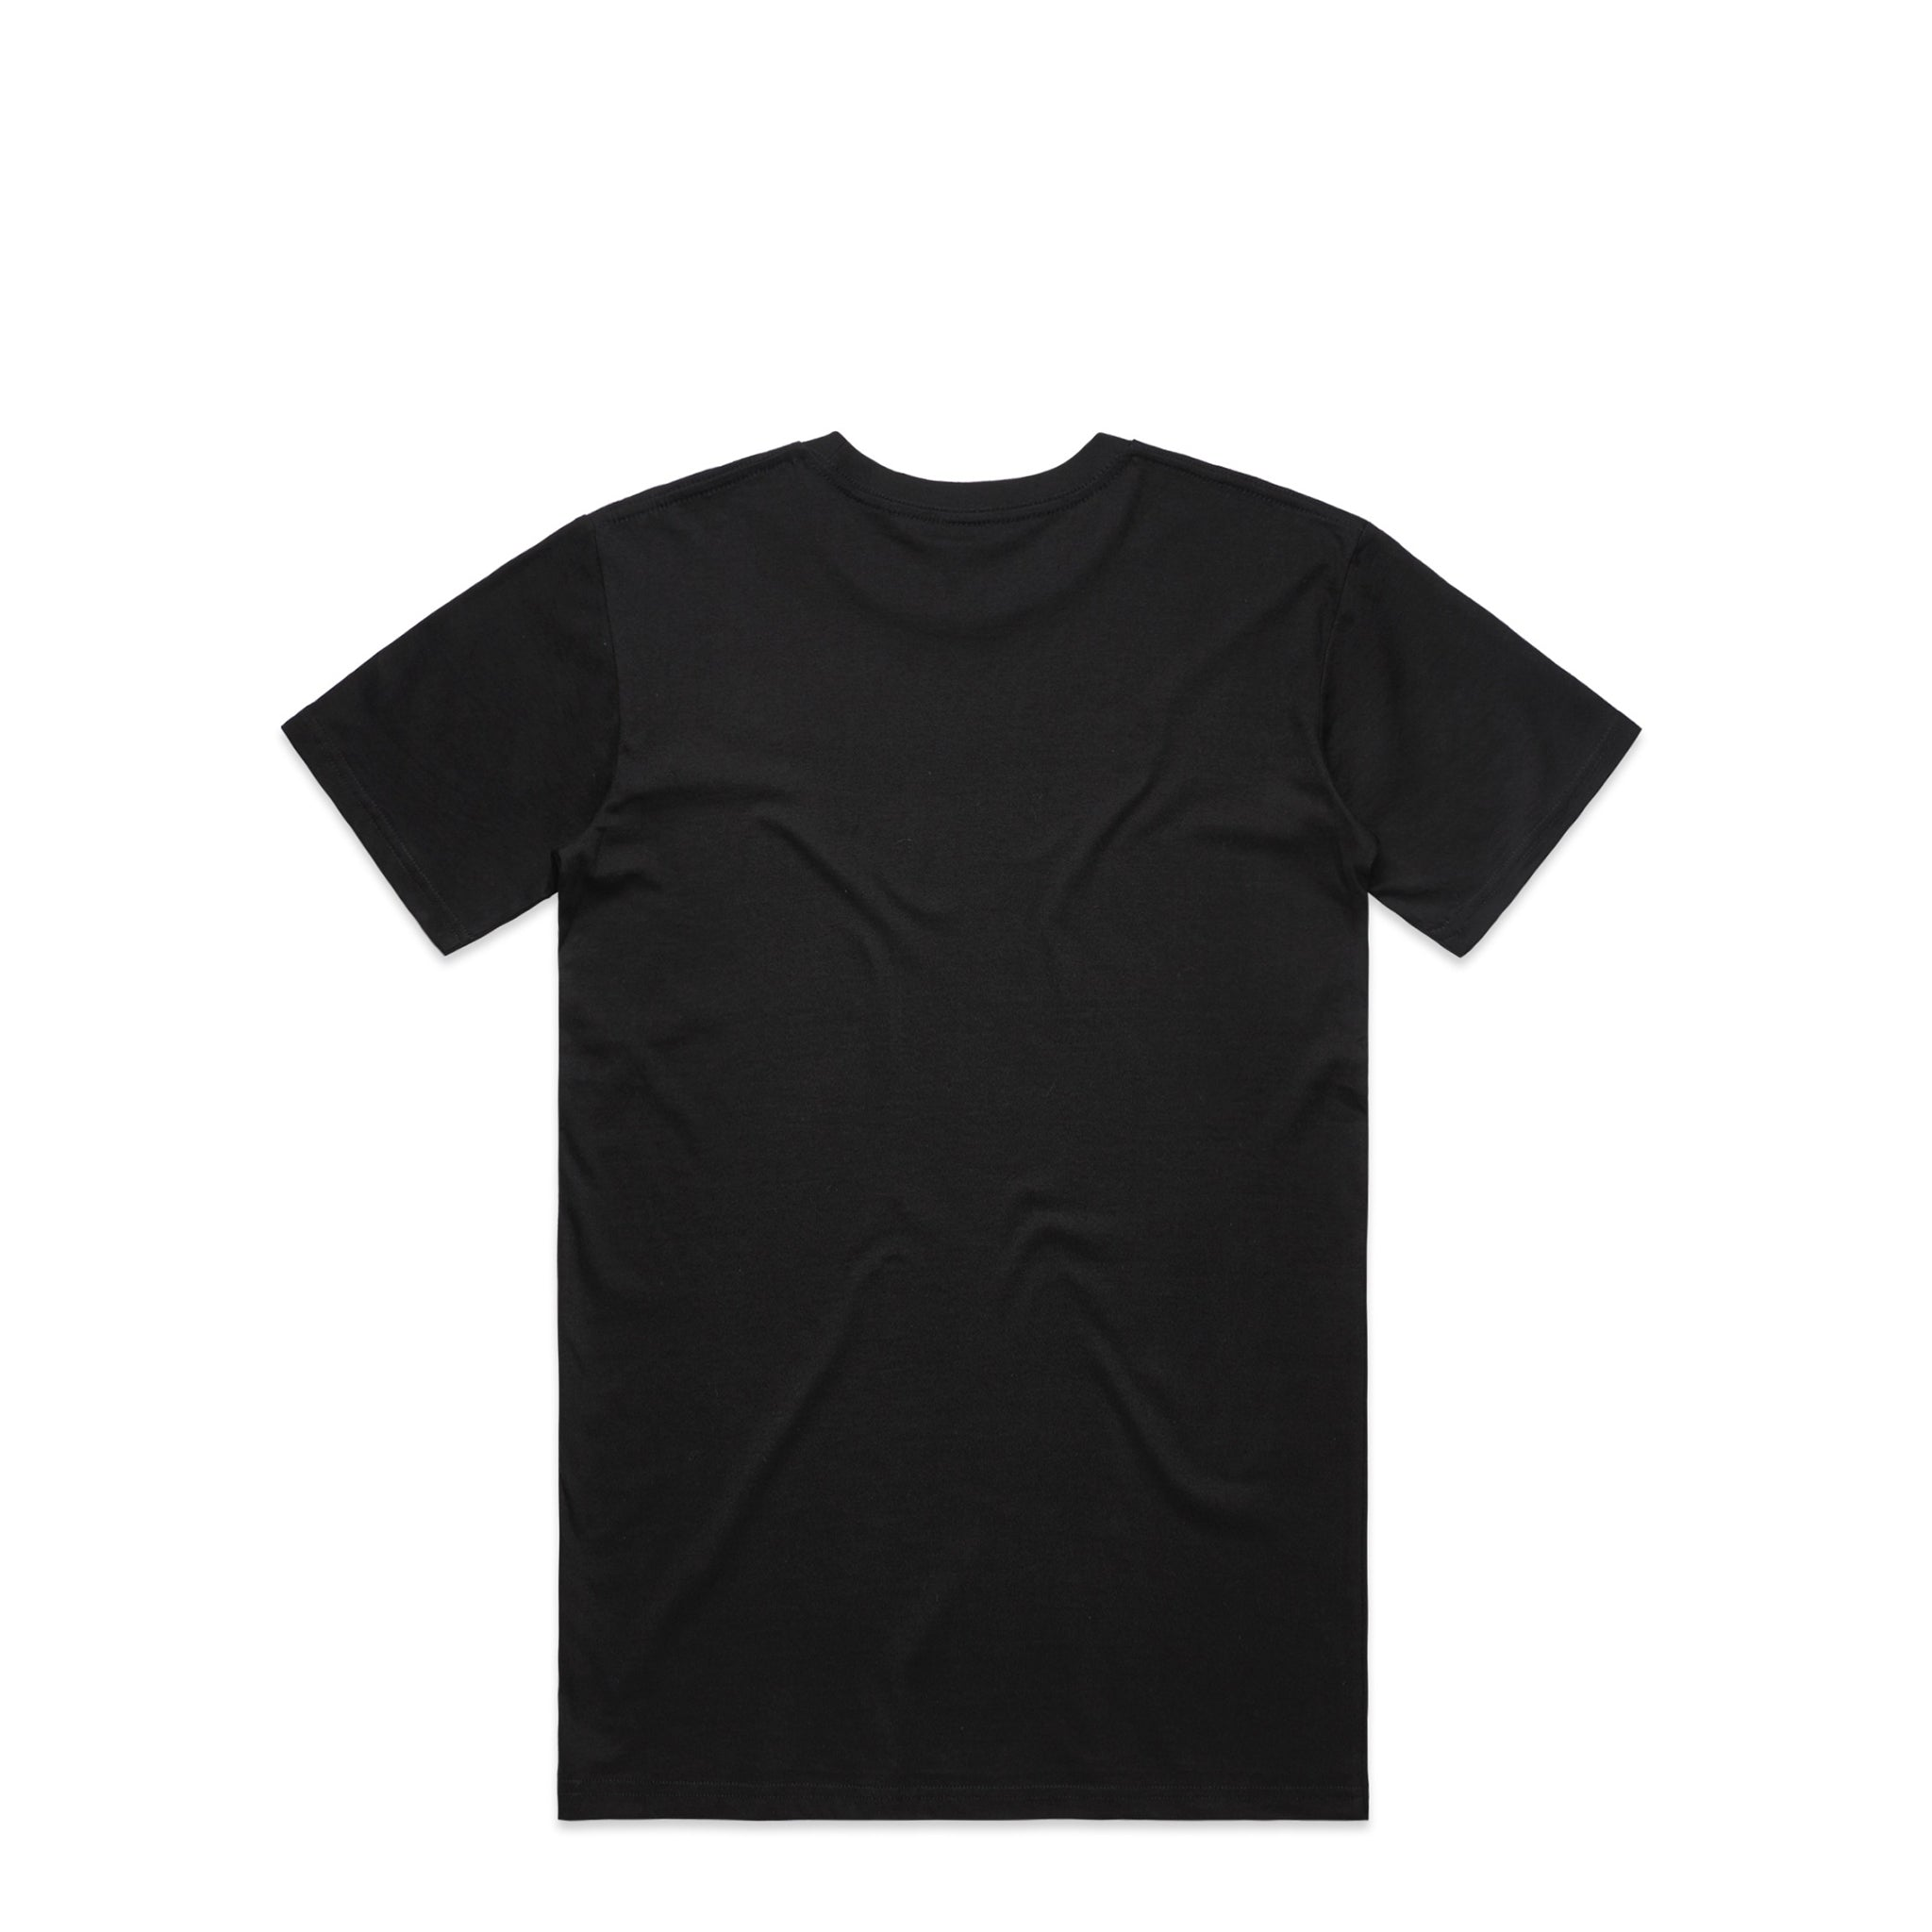 Darth Fader Black T-Shirt | Hard Grind